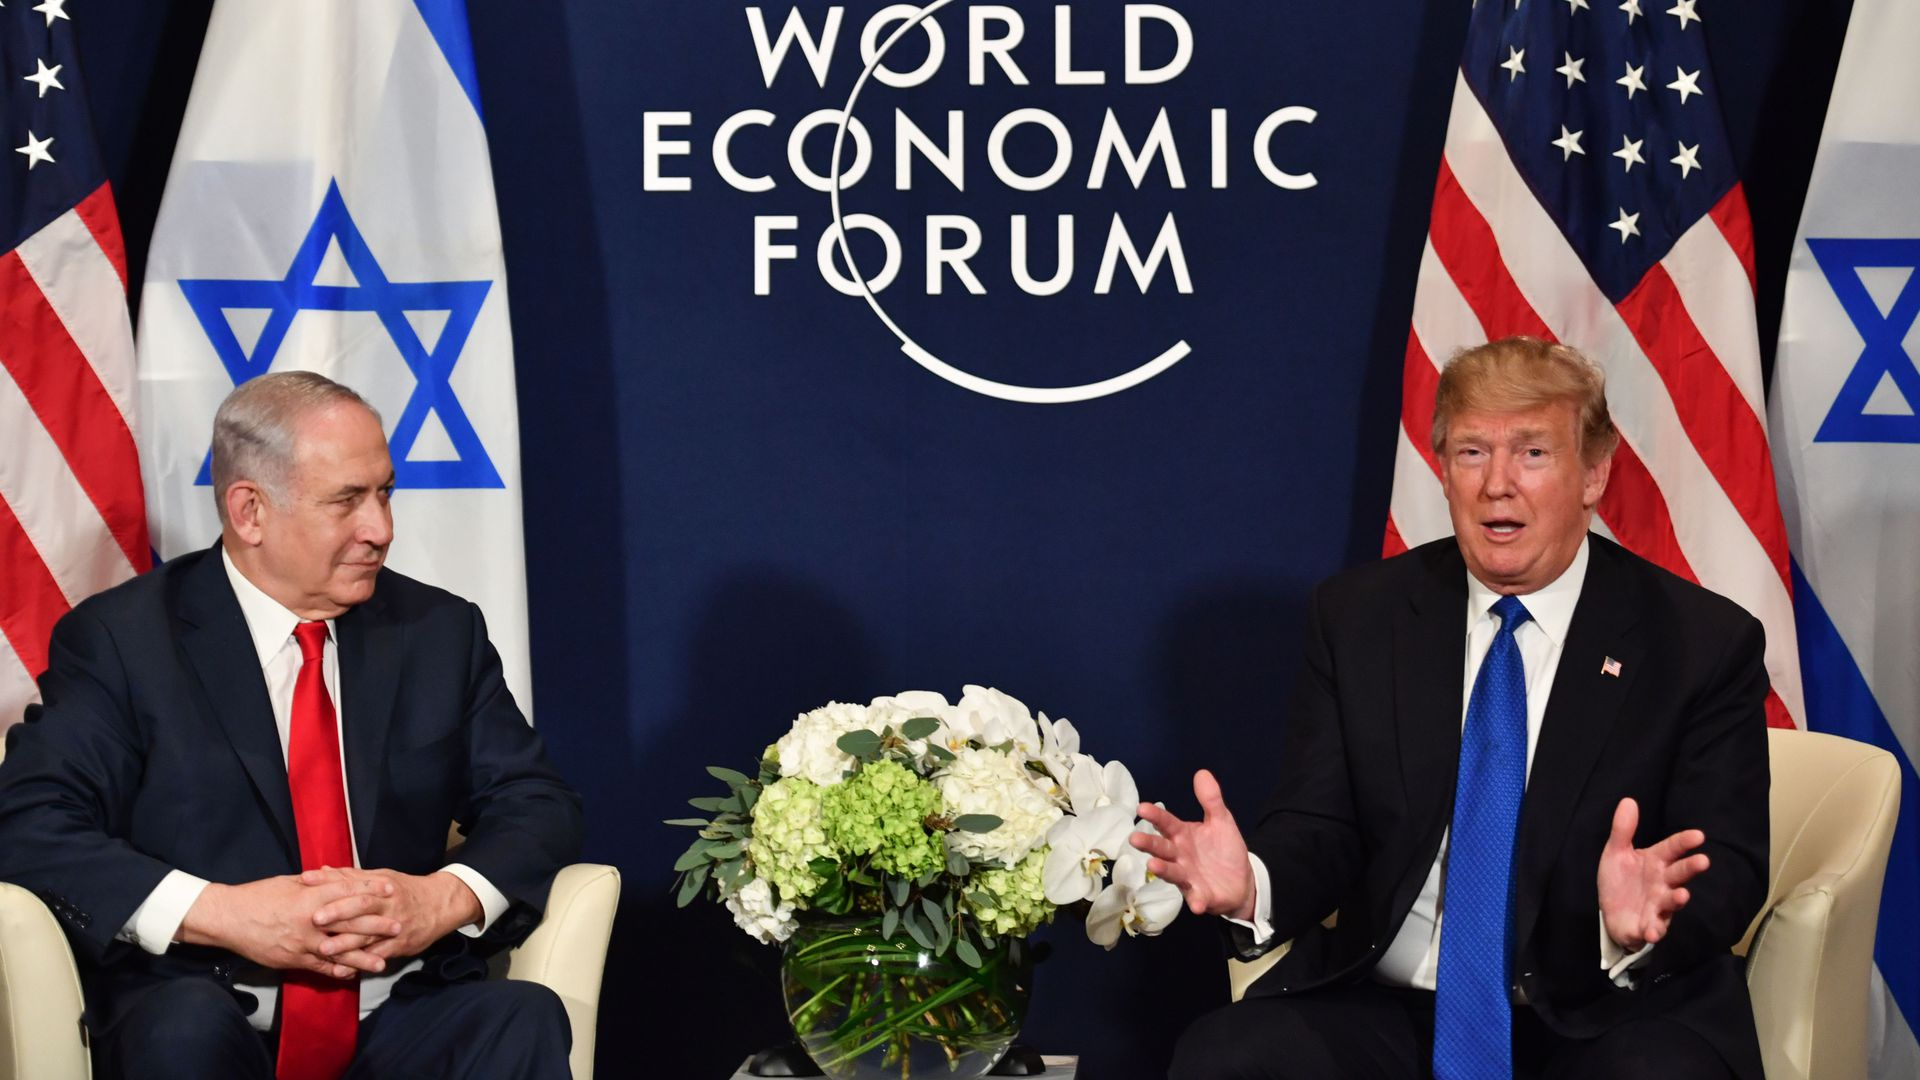 Trump and Netanyahu talk at Davos